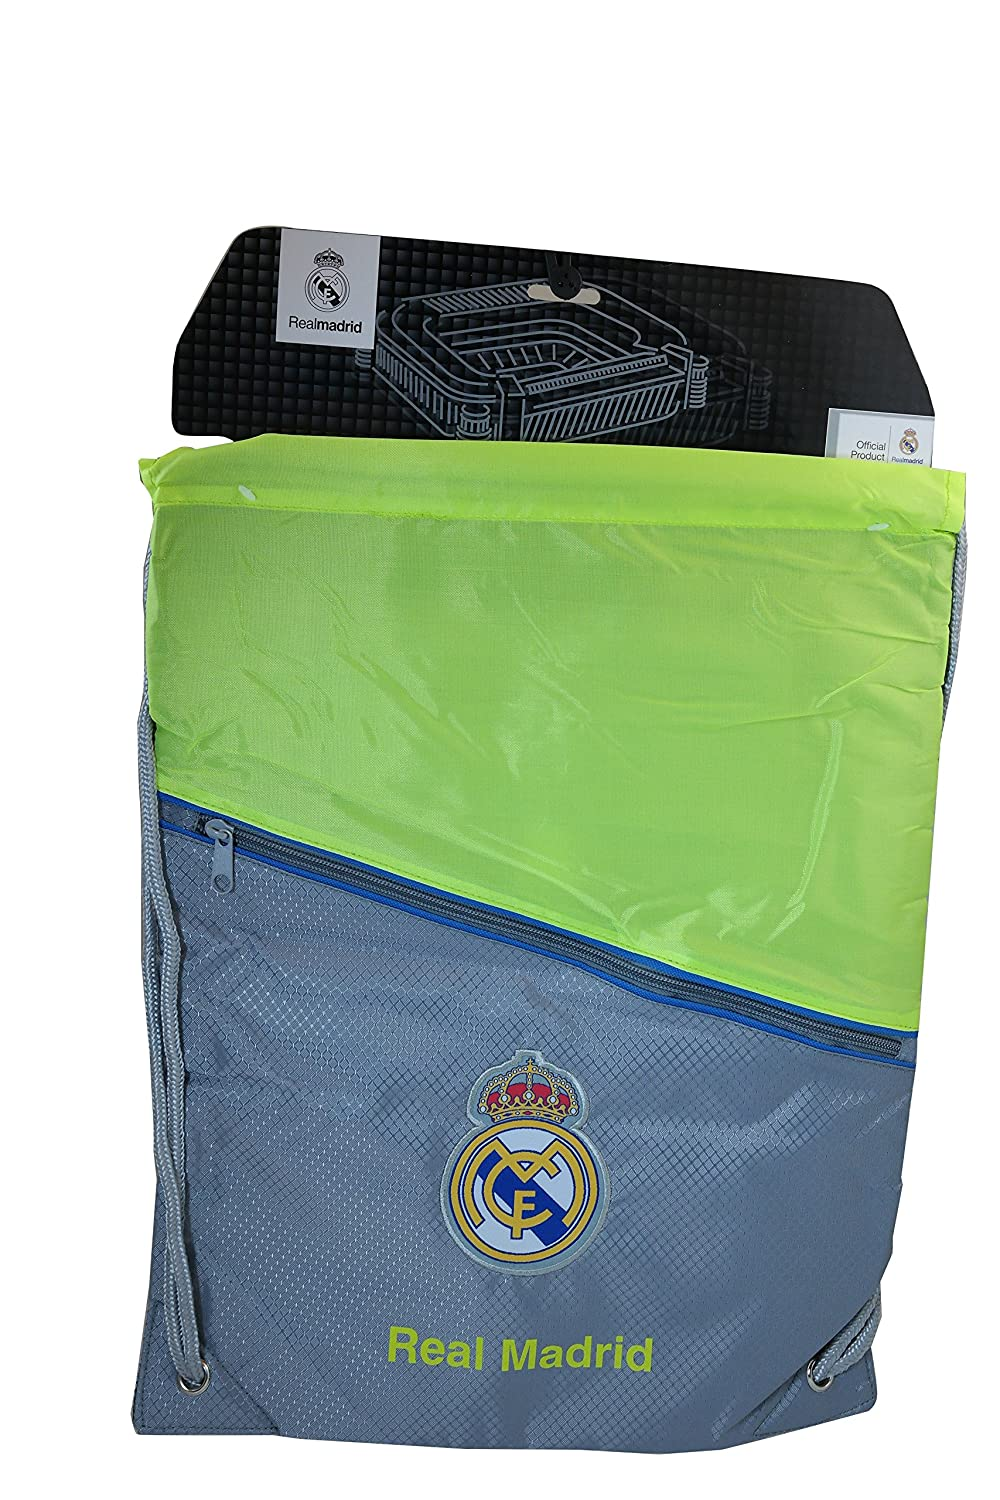 Real Madrid c.f. Authentic Official Licensed Soccer Cinch Bag B00J5X63EA Medium|ブラックと矢(Black with Arrow) Medium